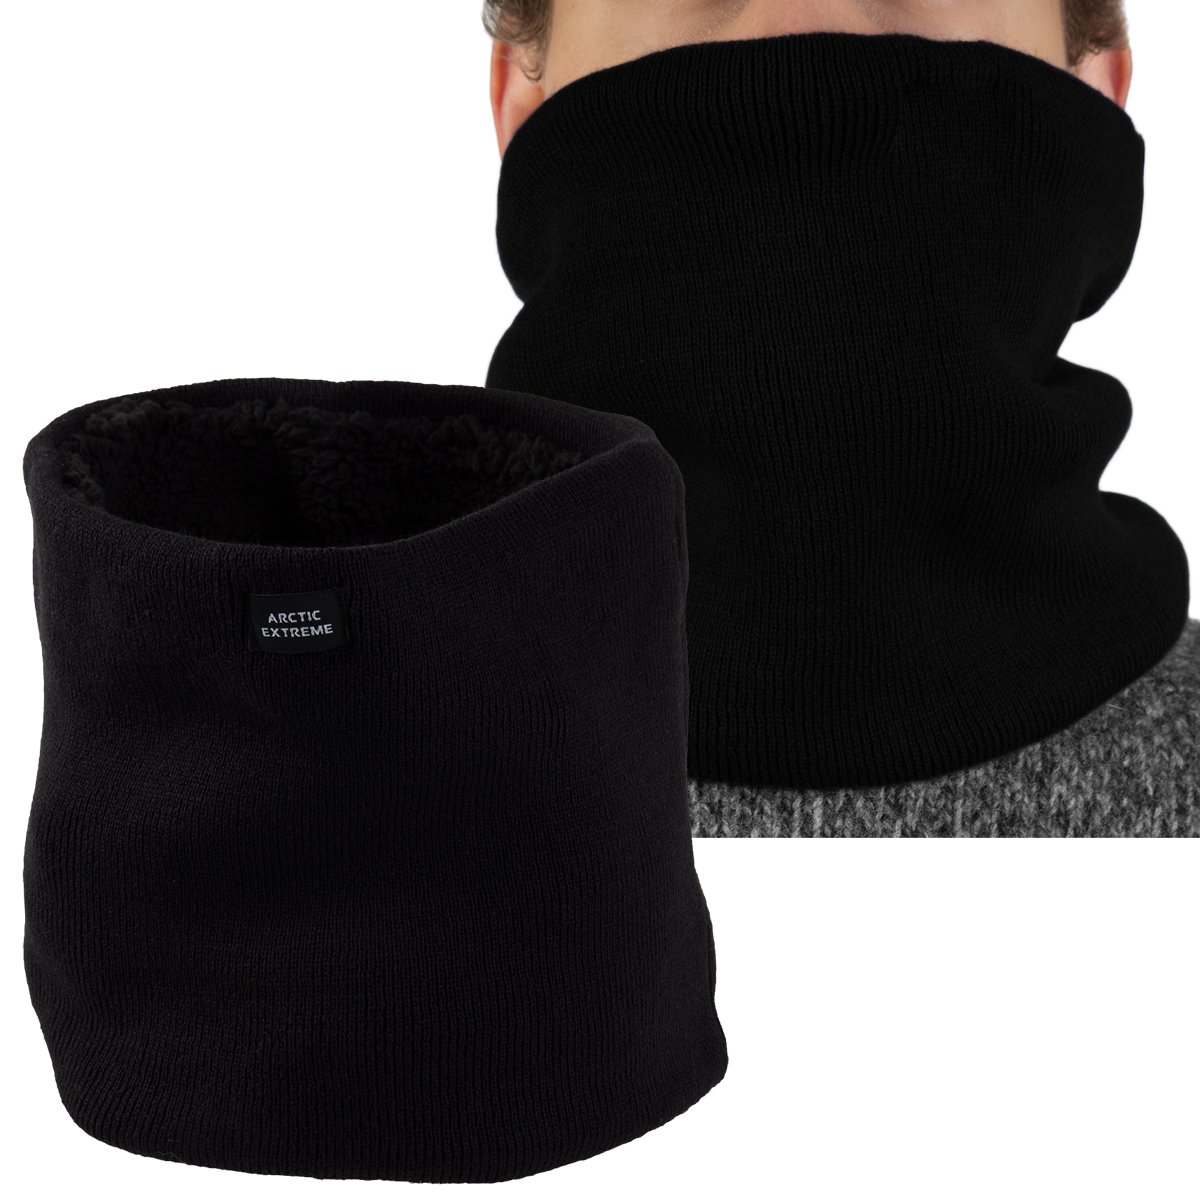 2 Pack Cold Weather Gear Winter Fleece Lined Neck Warmers Extreme Thick Thermal